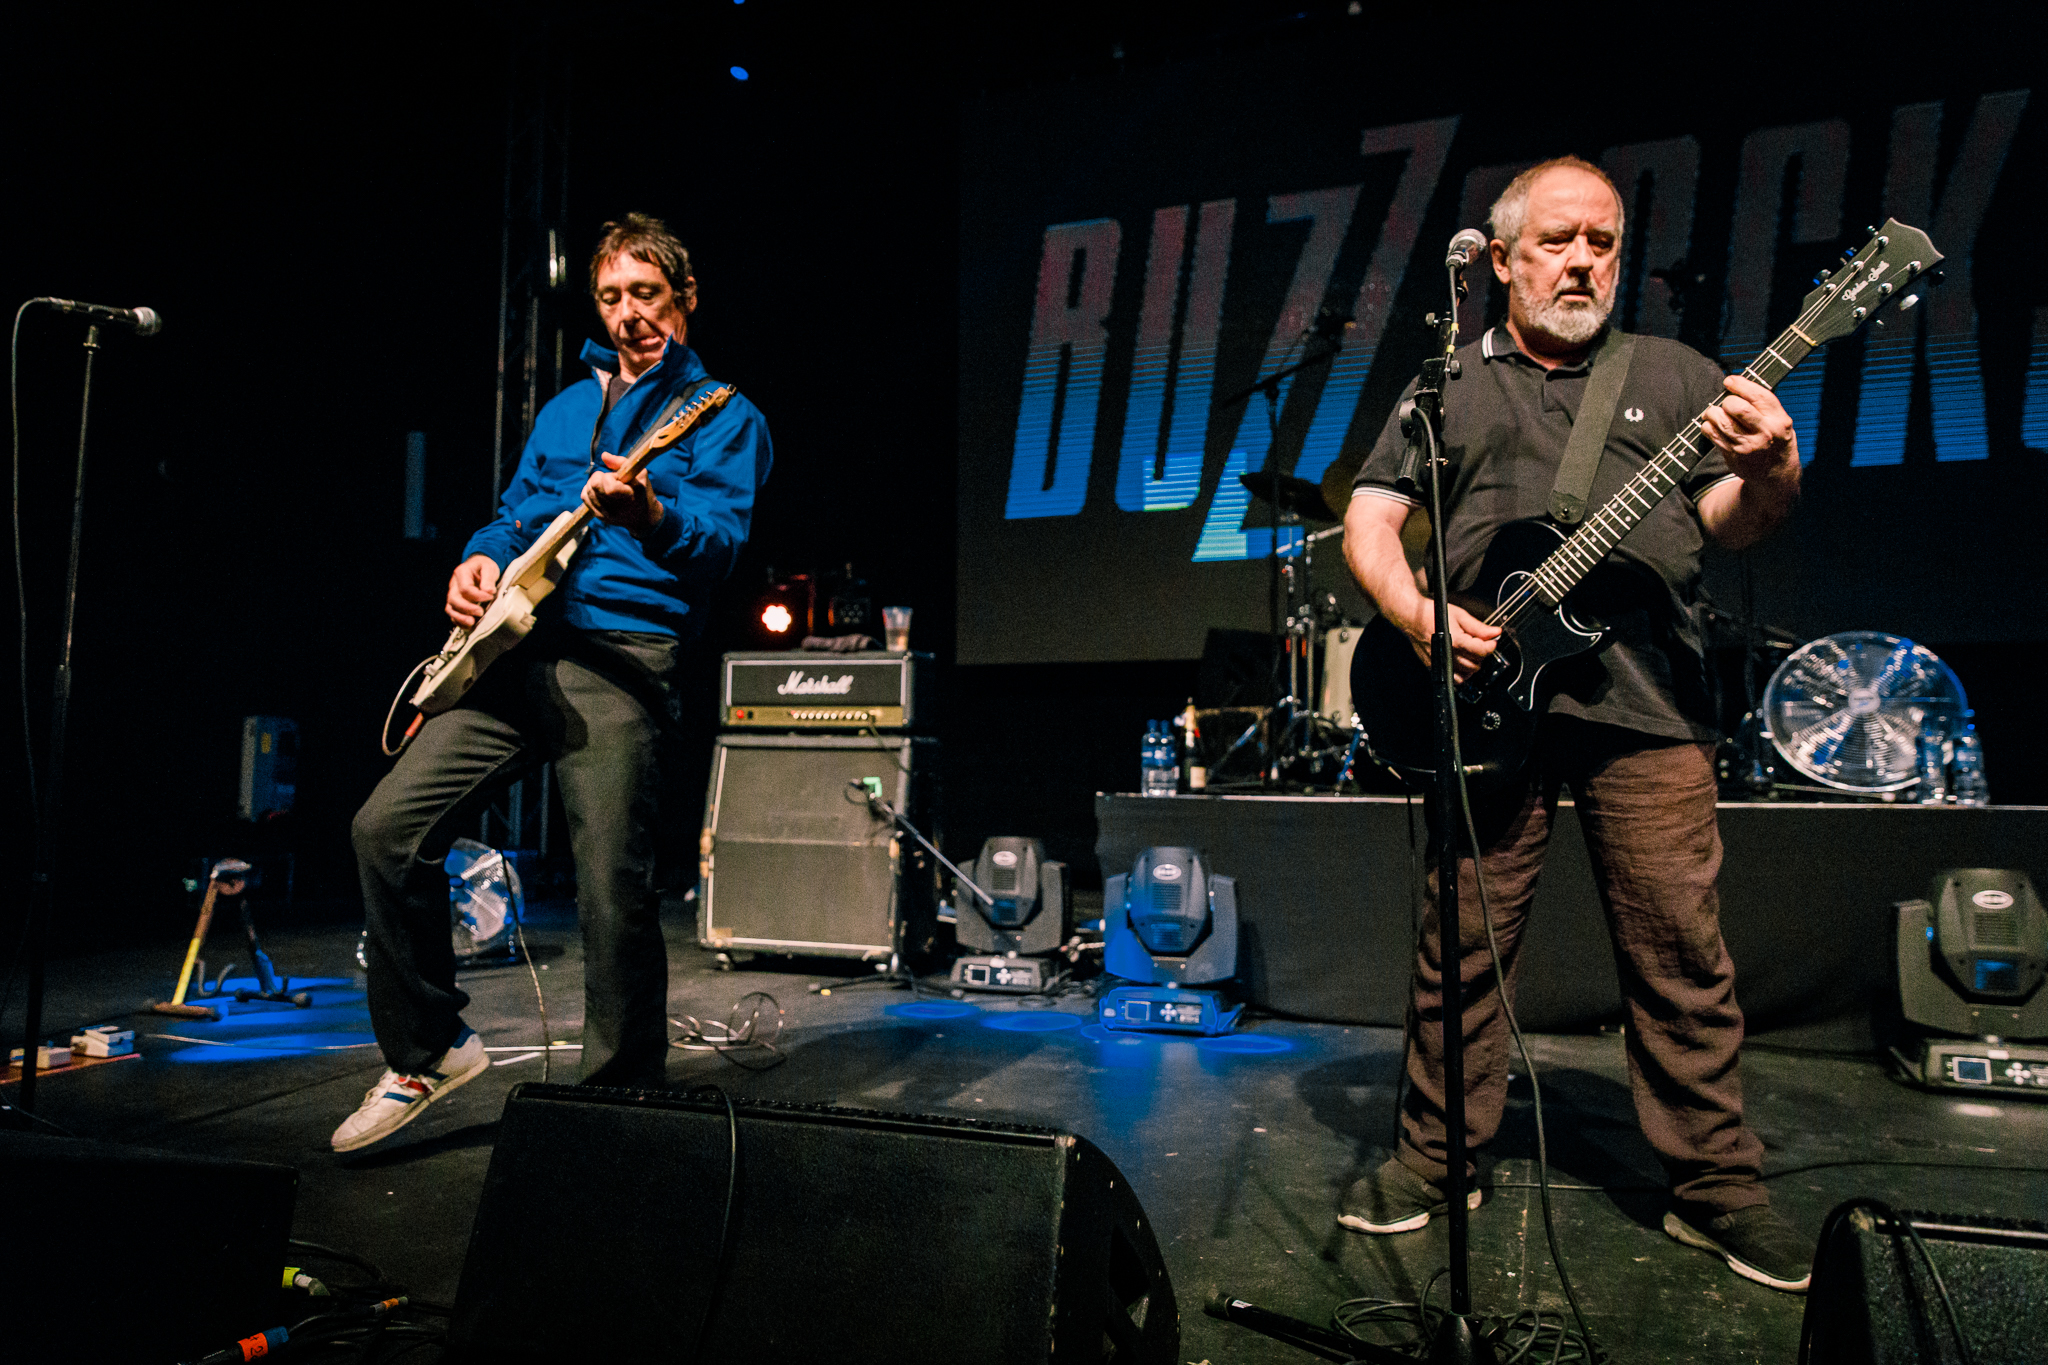 Buzzcocks performing at The Forum Hertfordshire in Hatfield, England - 5/26/2018 (photo by Matt Condon / @arcane93)